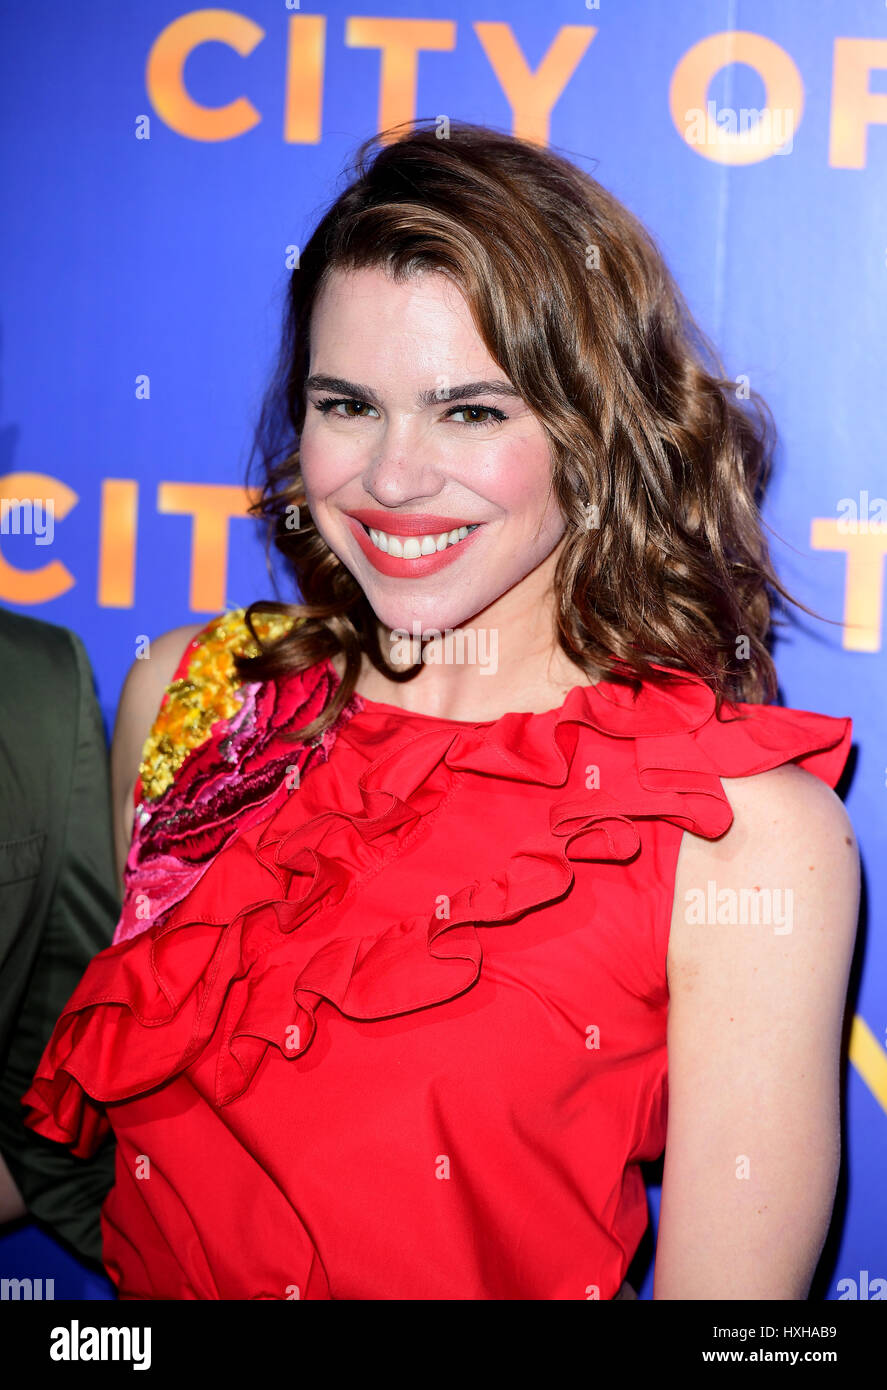 Billie Piper arriving for the City of Tiny Lights Photocall held at the BFI Southbank in London. - Stock Image